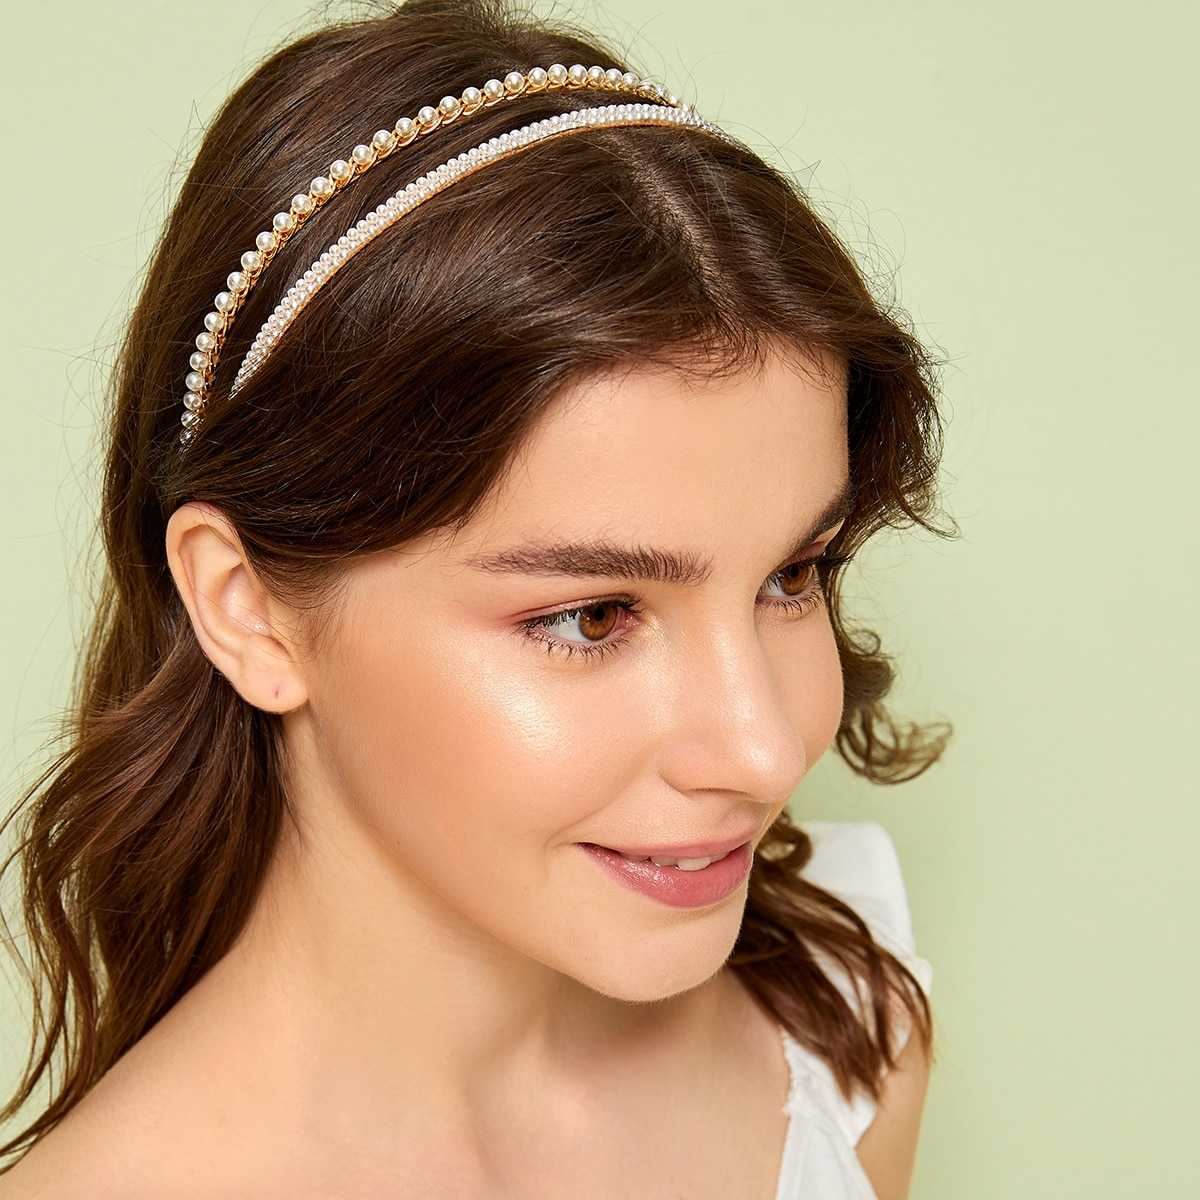 Faux Pearl Decor Headband 2pcs in Gold by ROMWE on GOOFASH